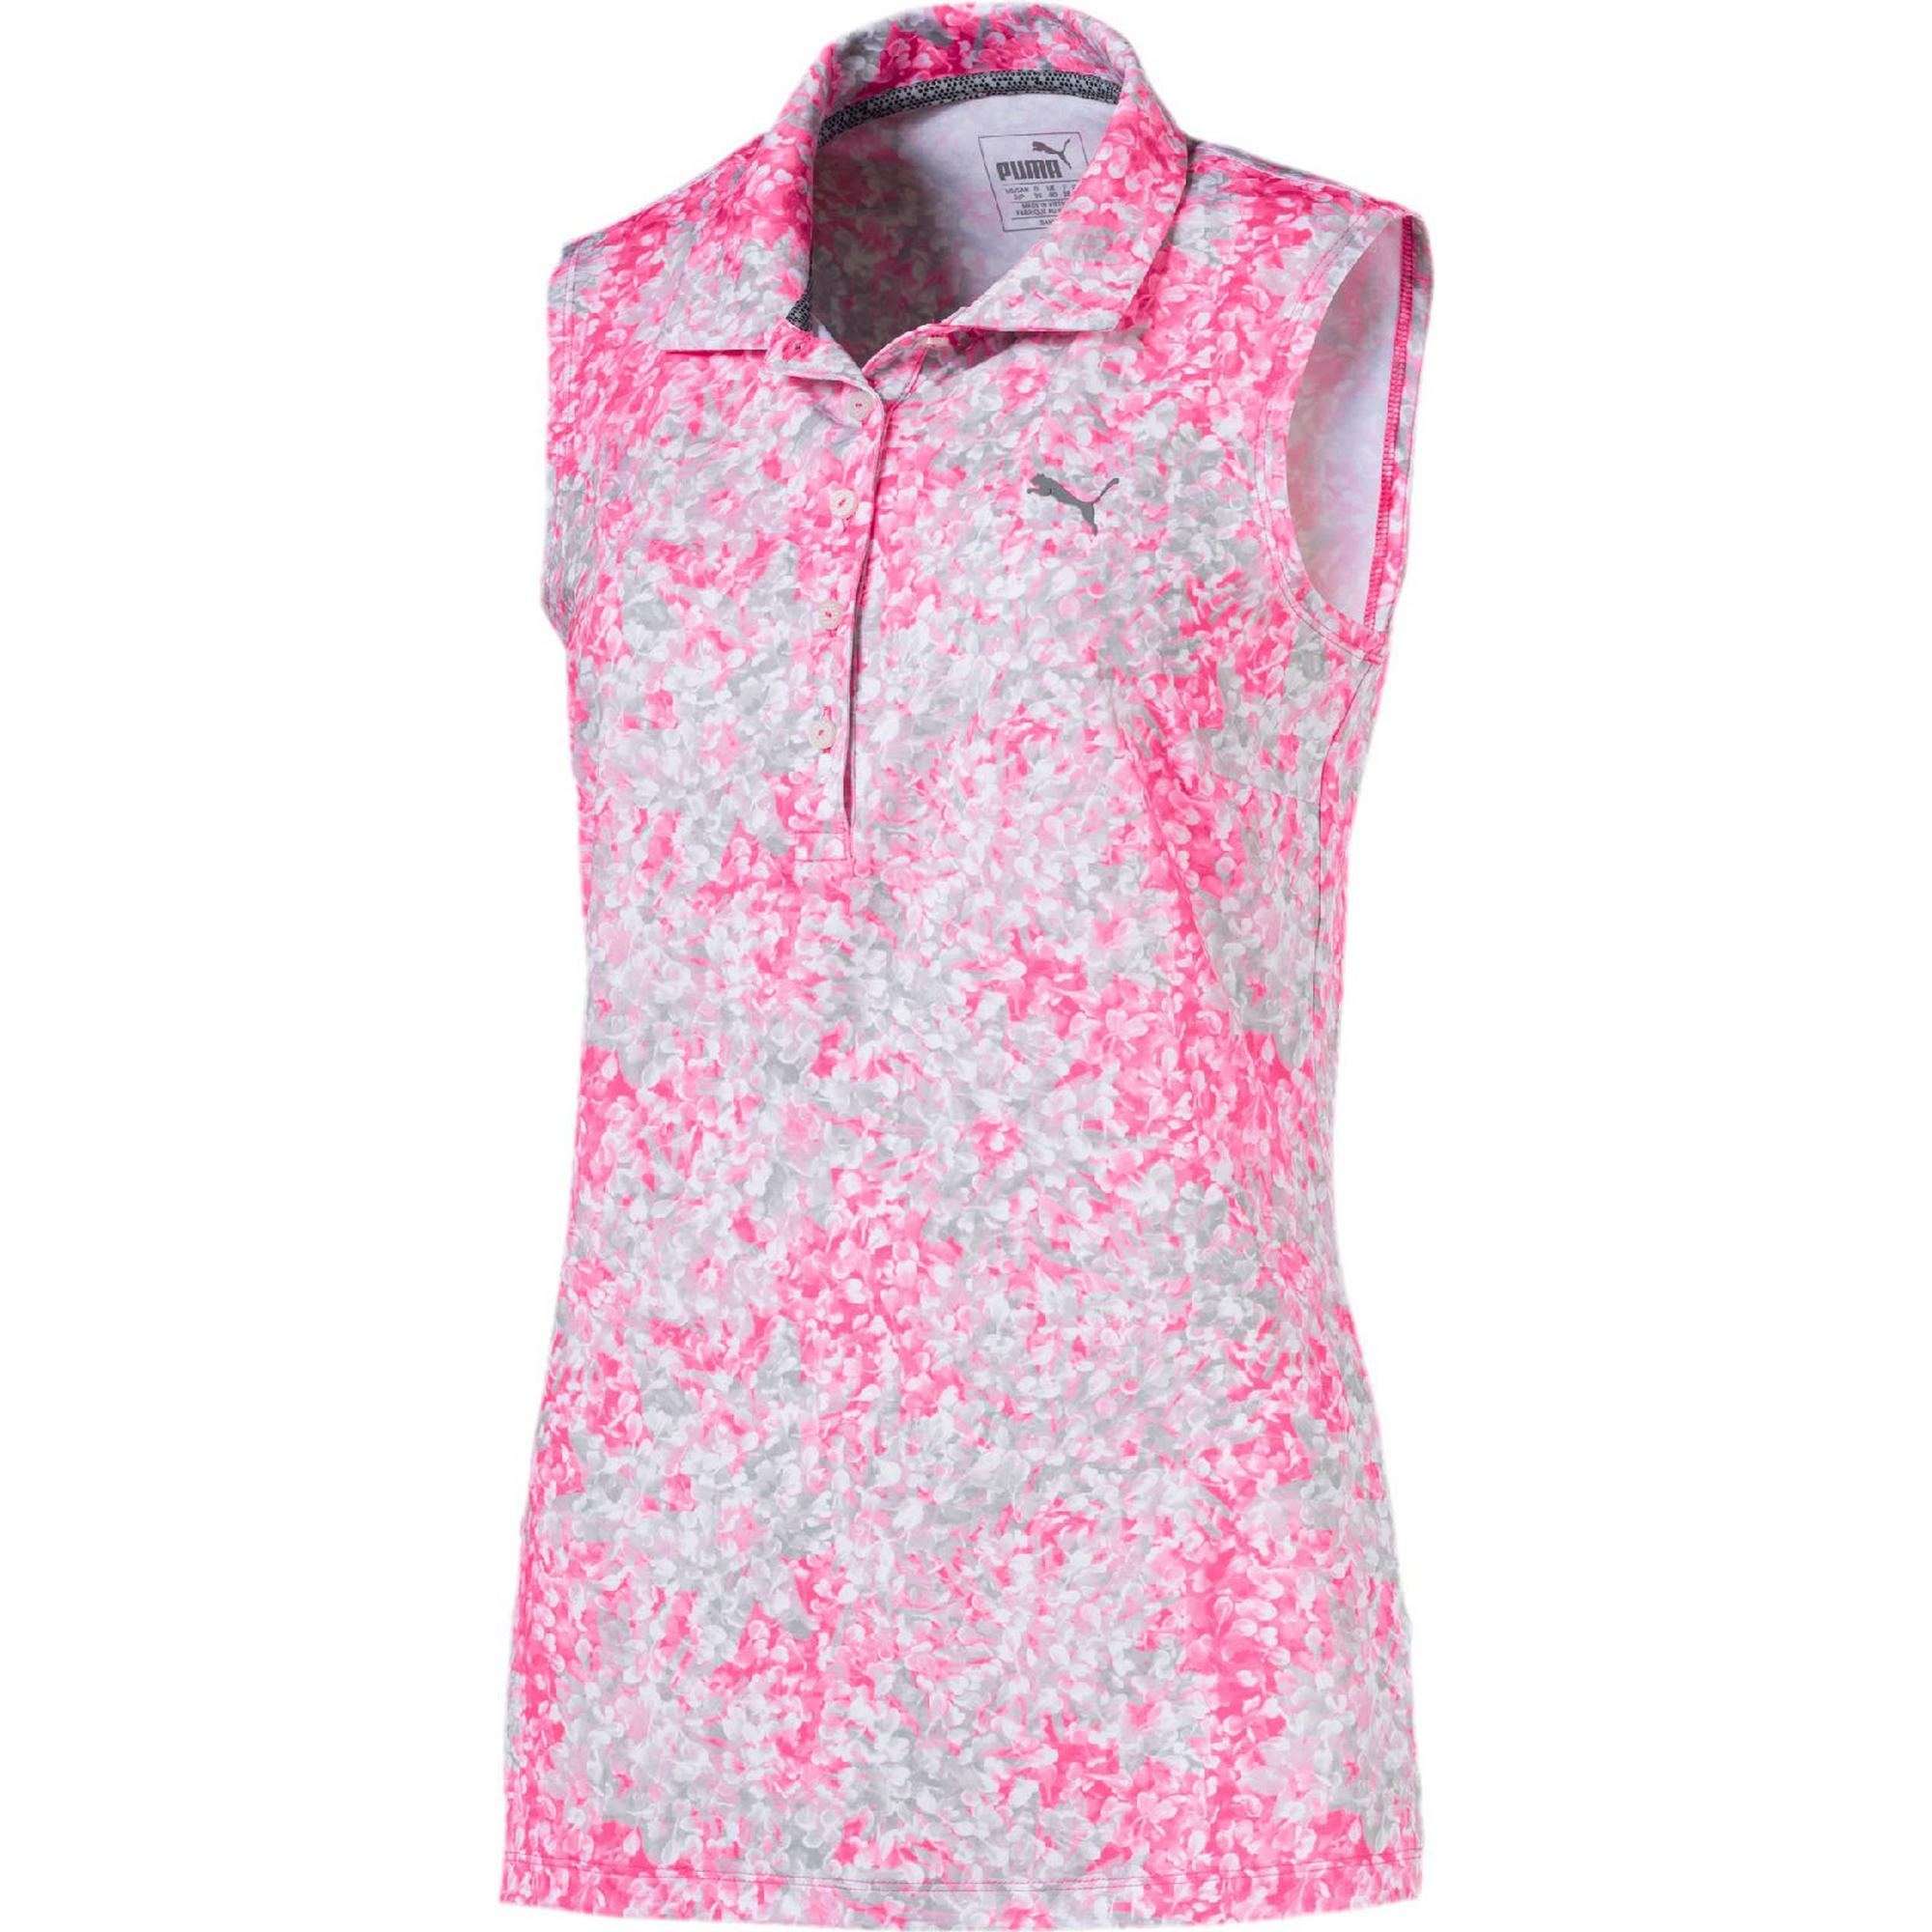 Women's Floral Sleeveless Polo